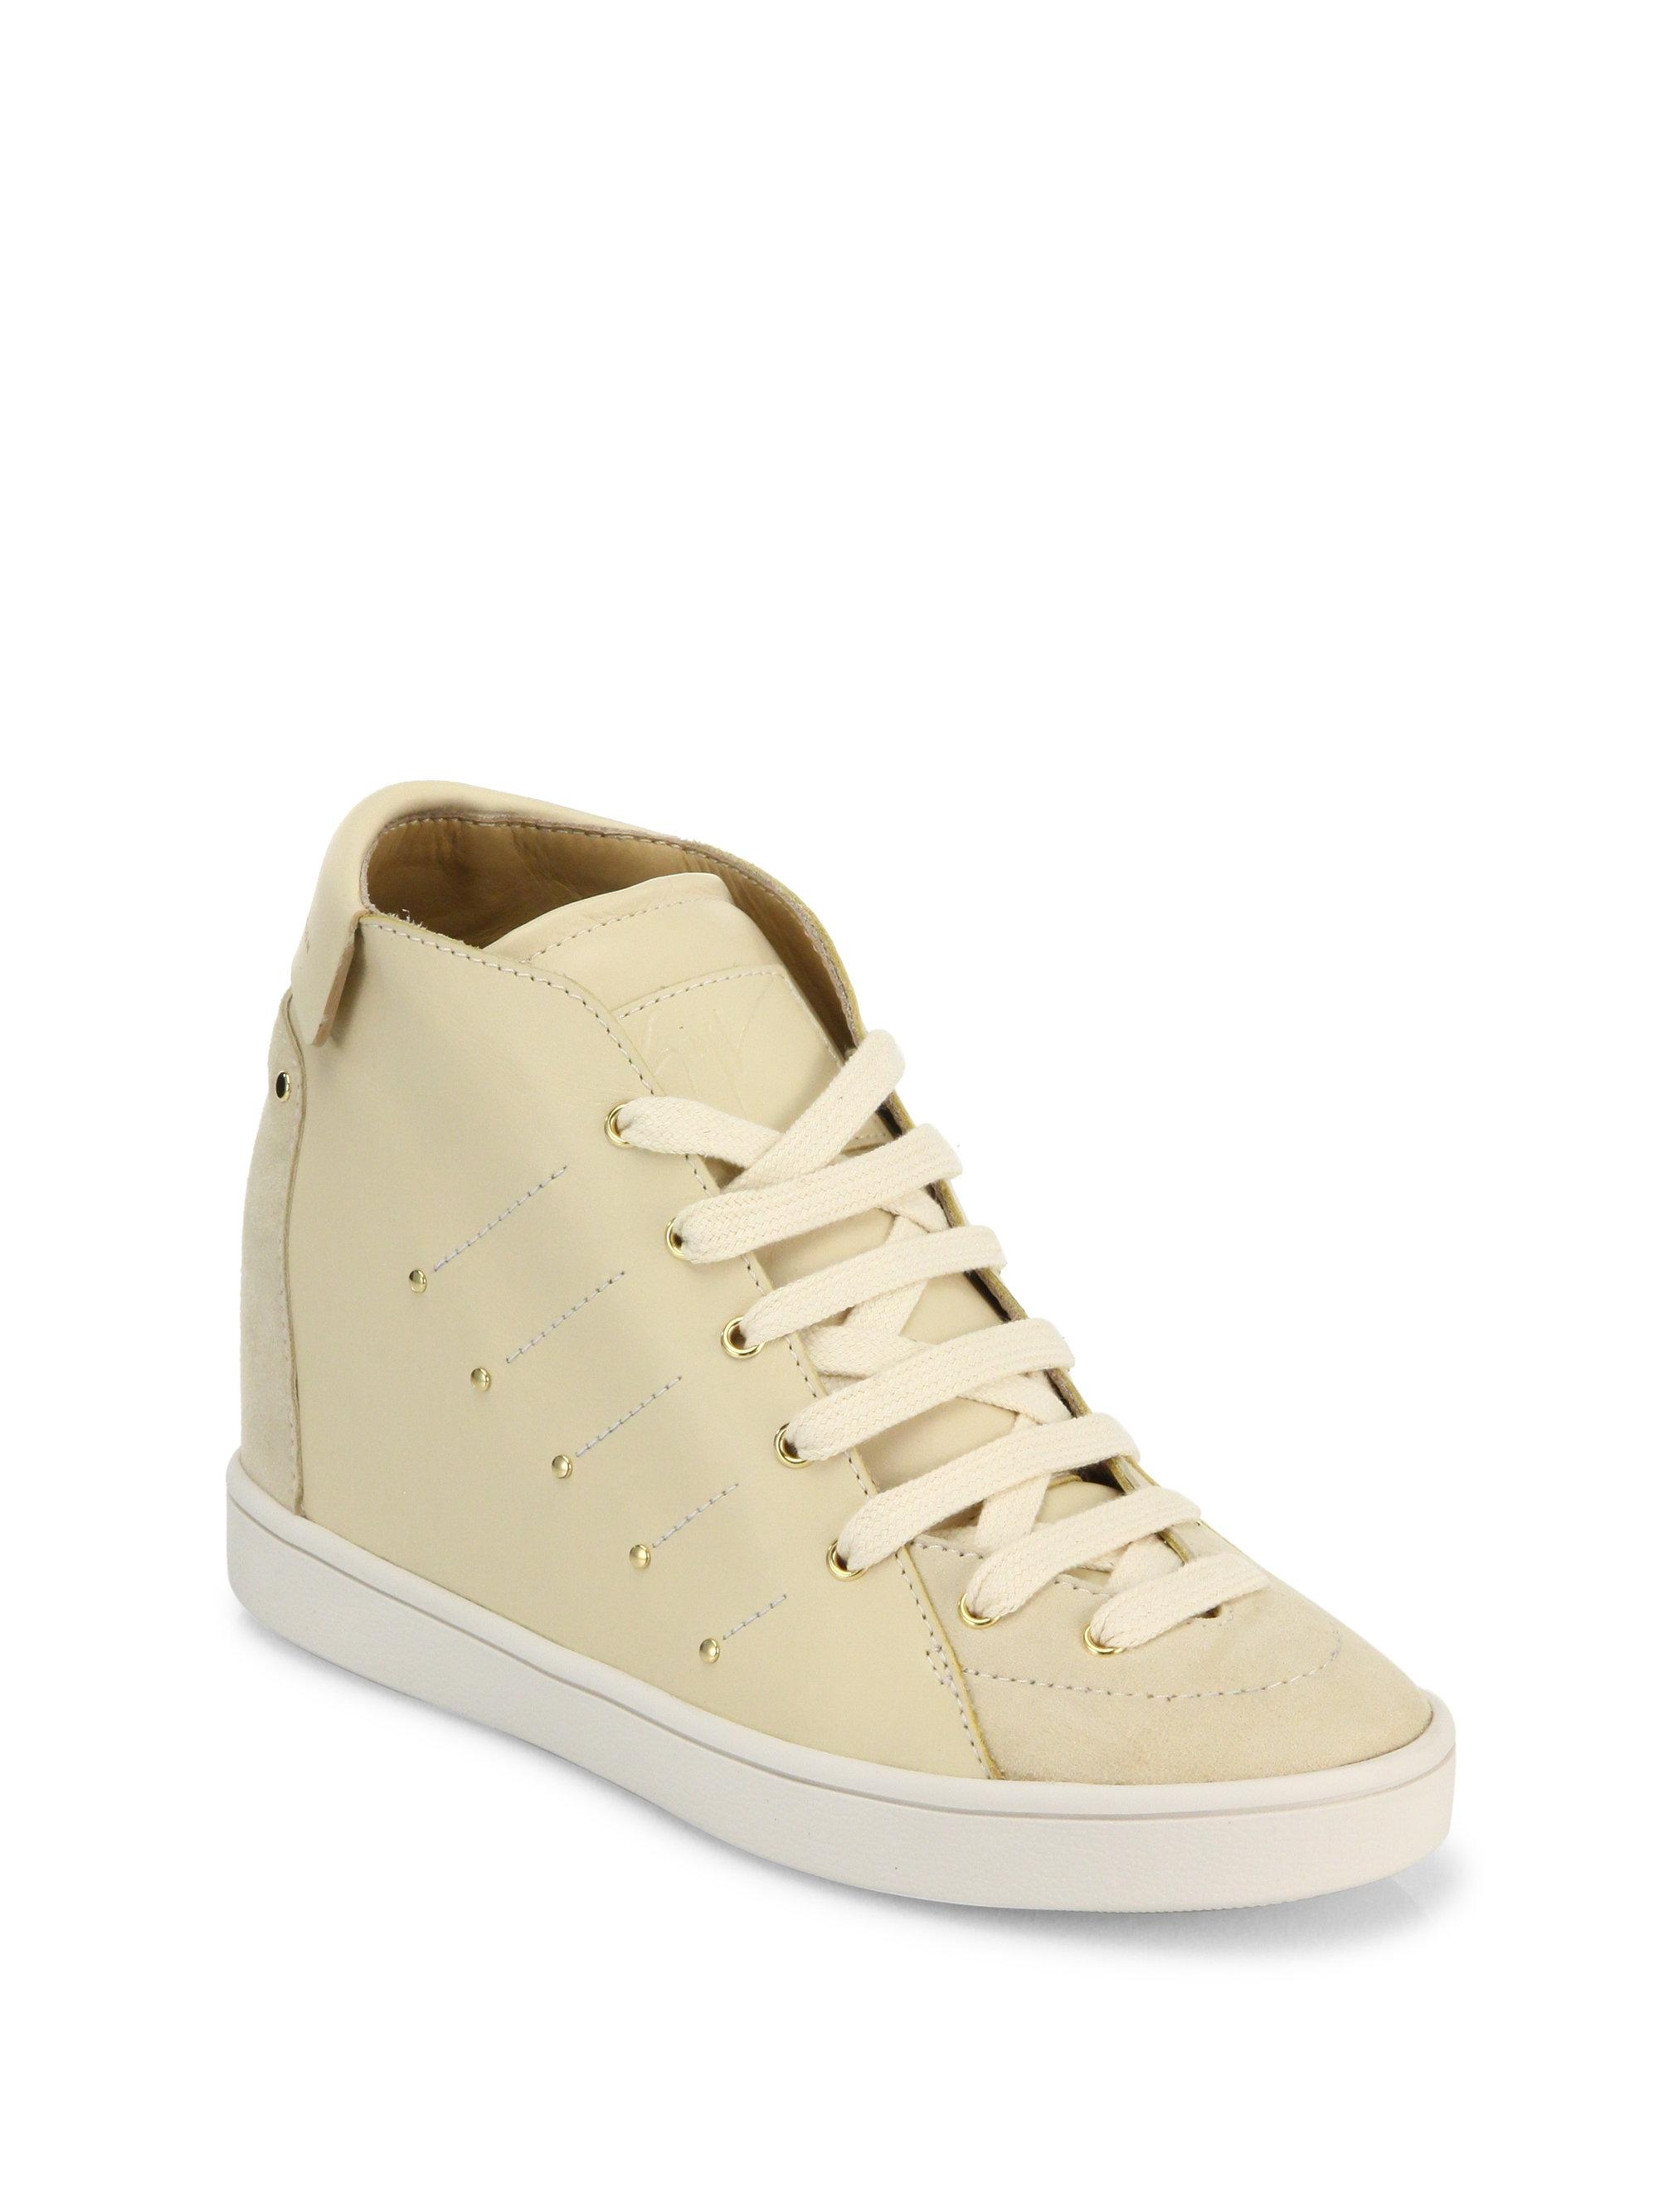 Gallery. Previously sold at: Saks Fifth Avenue · Women's Wedge Sneakers